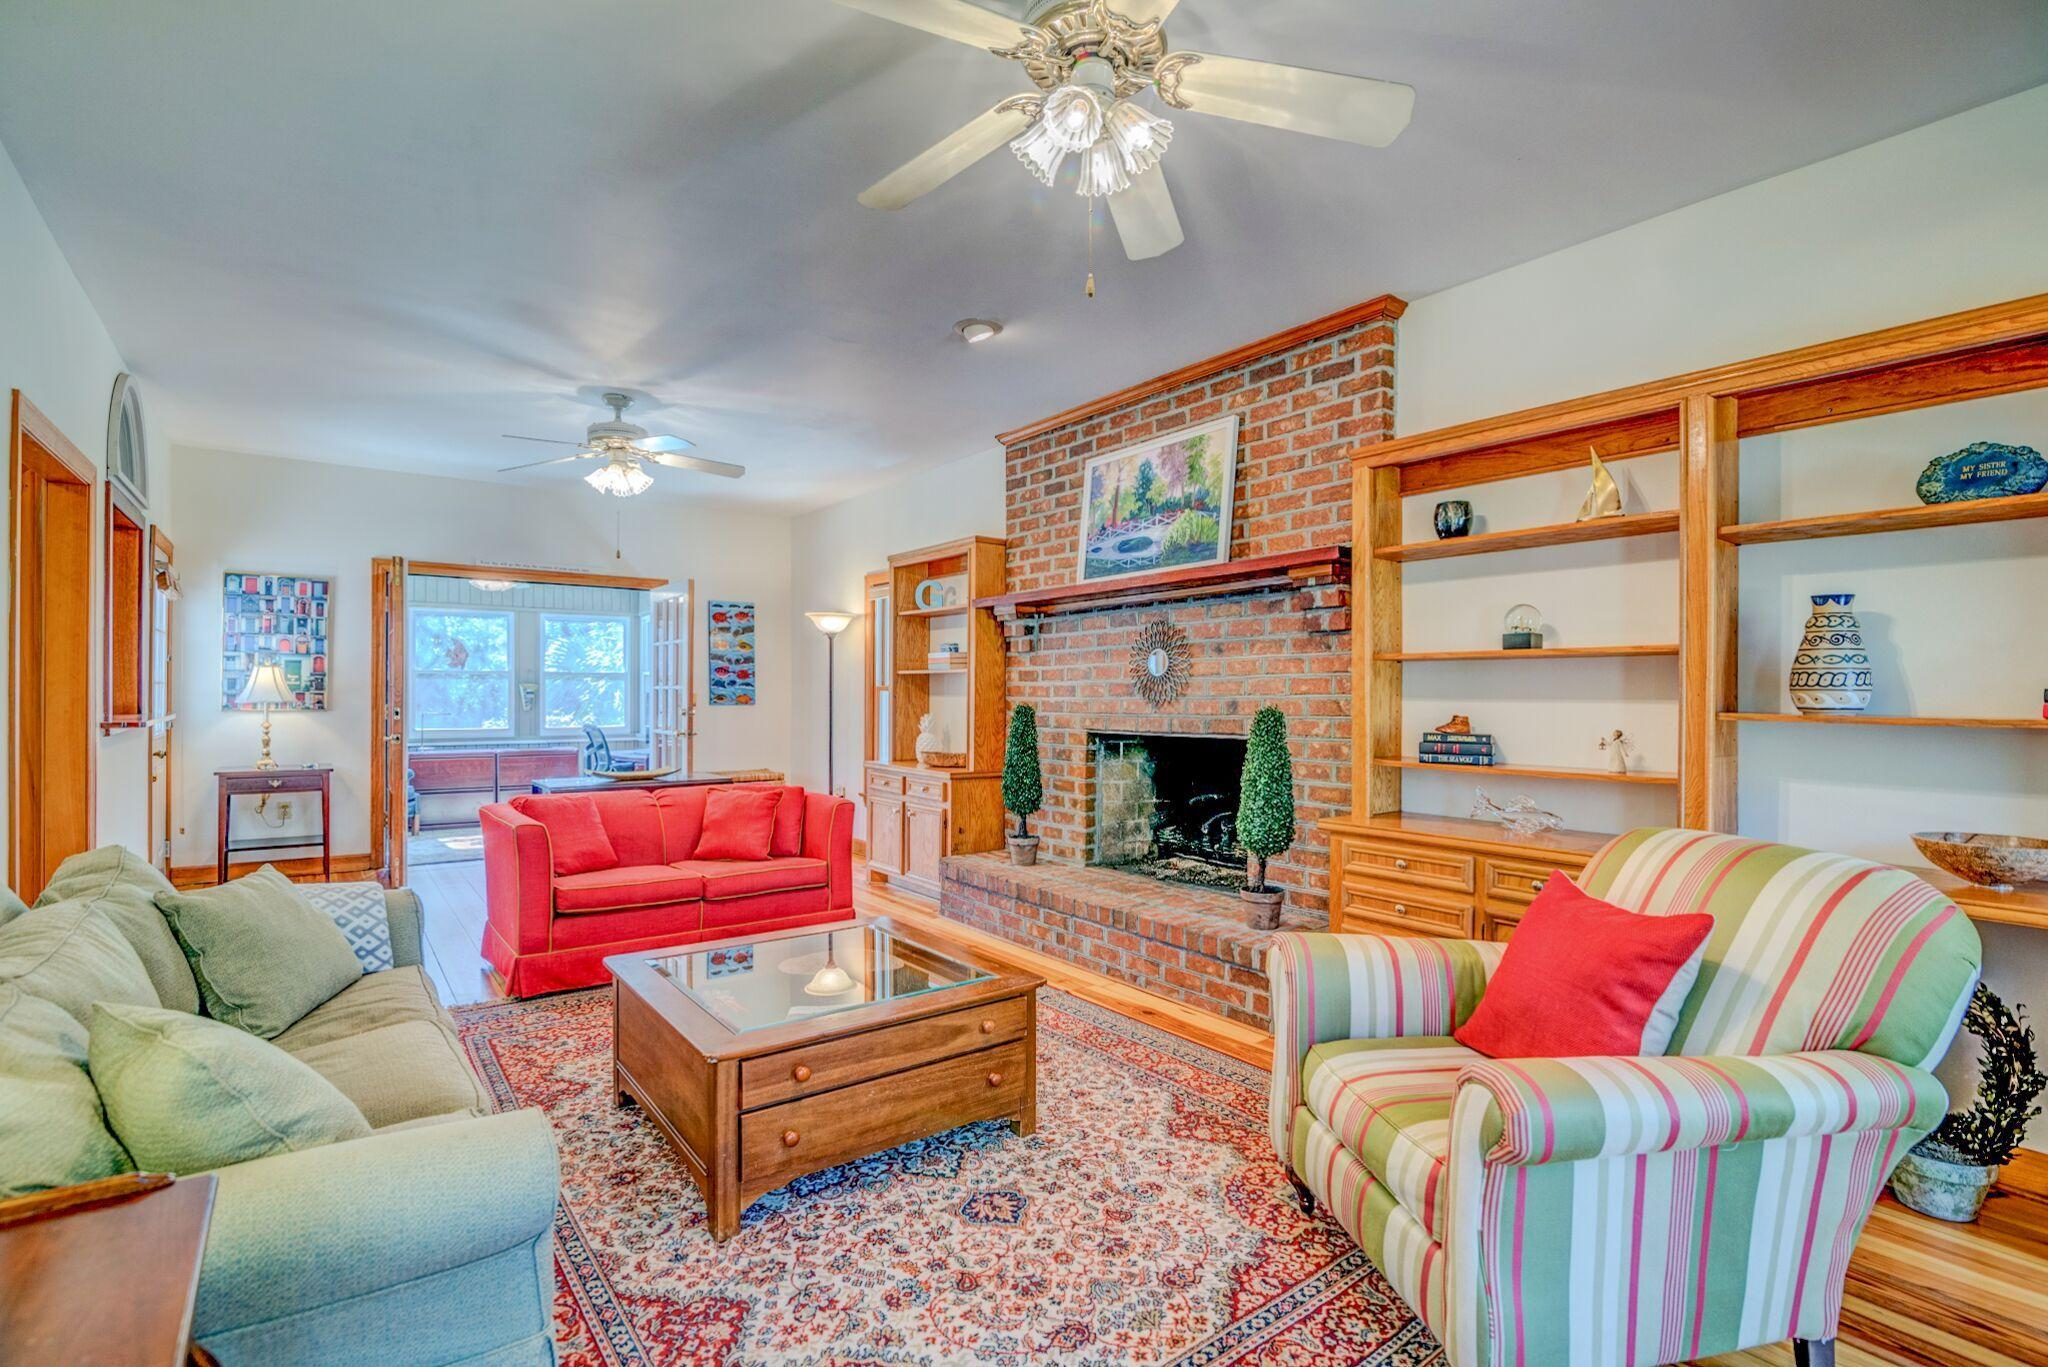 Alston Point Homes For Sale - 585 Flannery, Mount Pleasant, SC - 5